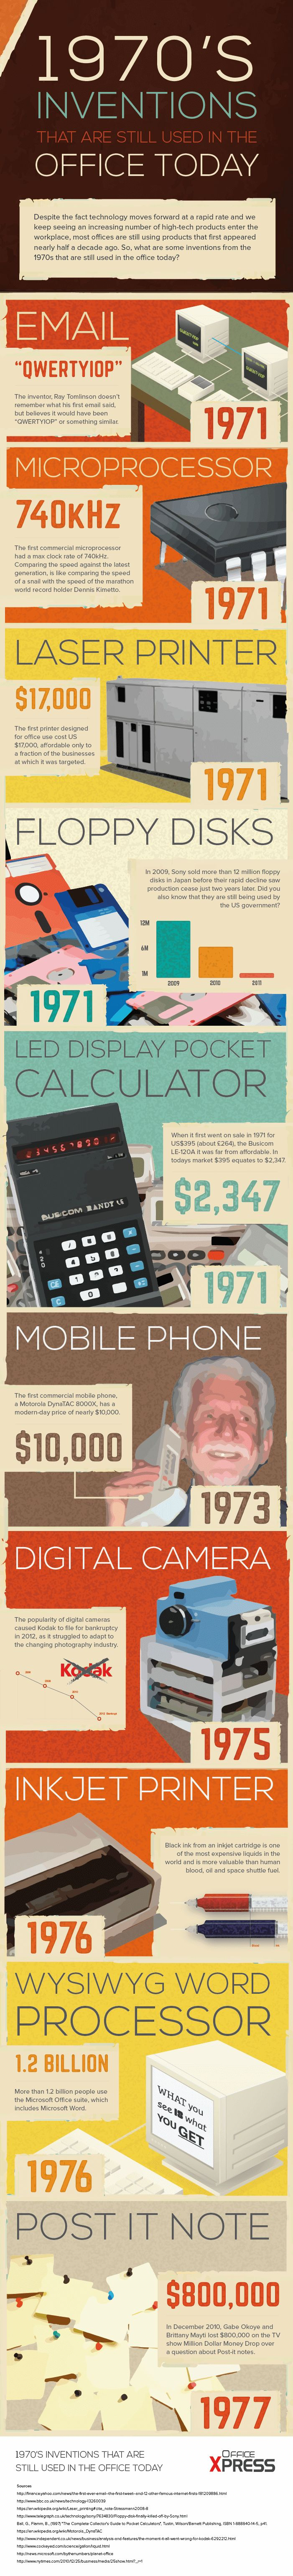 1970's Inventions that are Still Used in the Office Today #Infographic #Technology